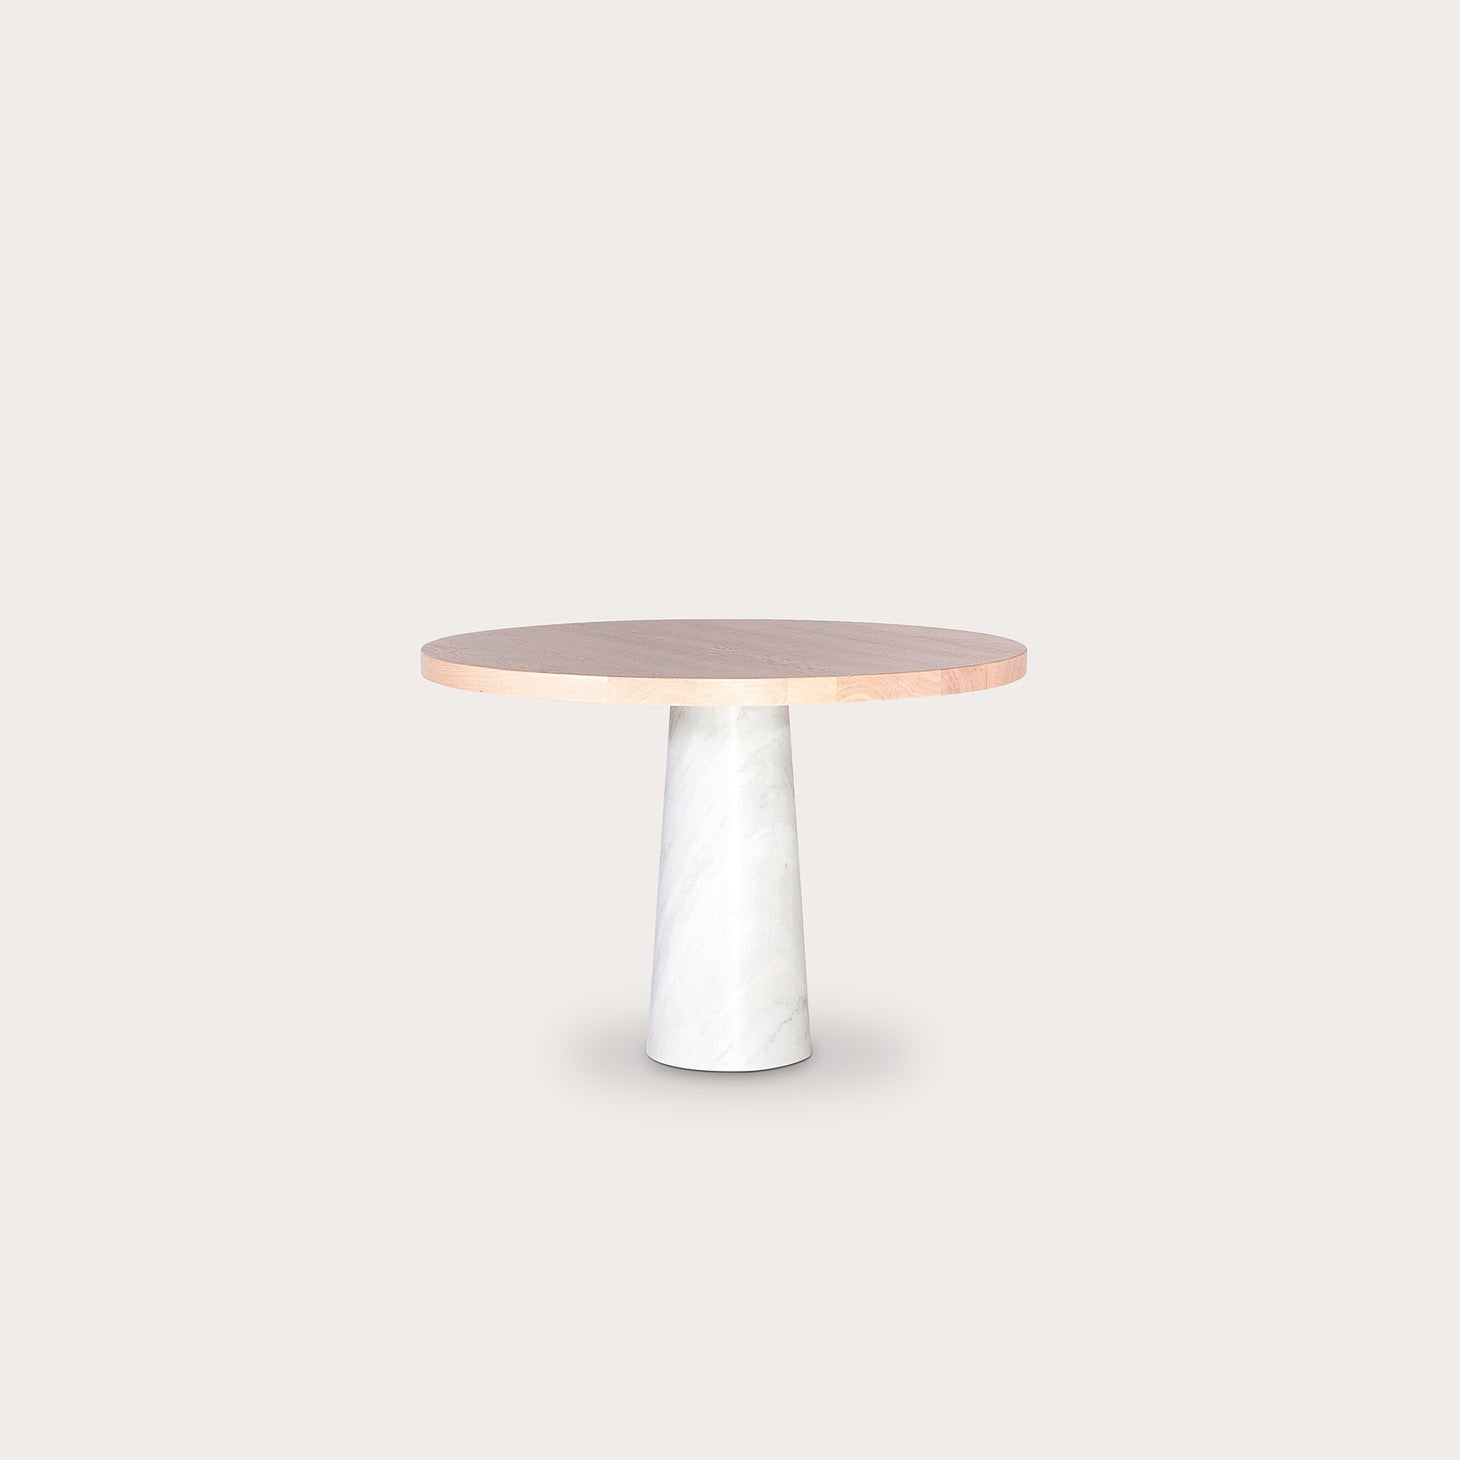 Stone Tables Marlieke Van Rossum Designer Furniture Sku: 416-230-10059